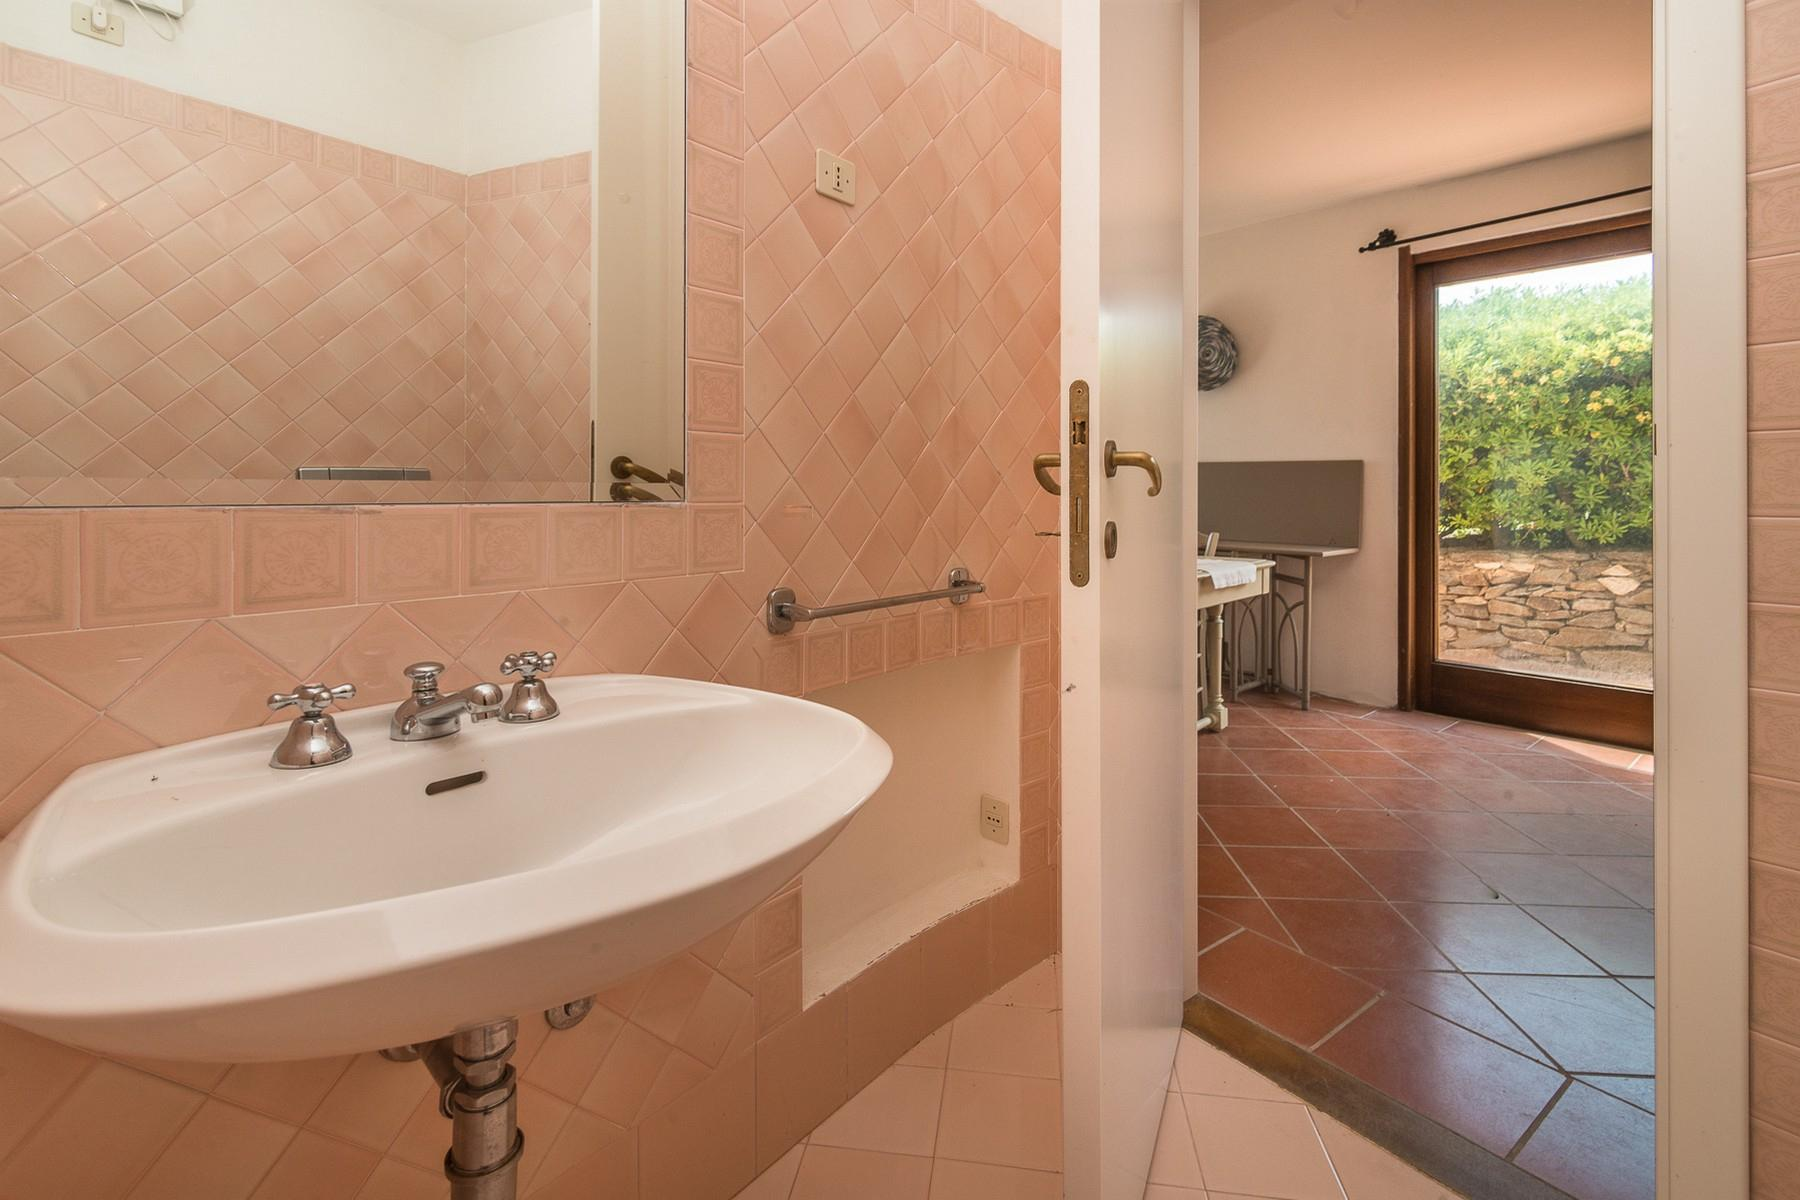 Porto Cervo Cala Granu Delightful Apartment a few steps from the beach - 15